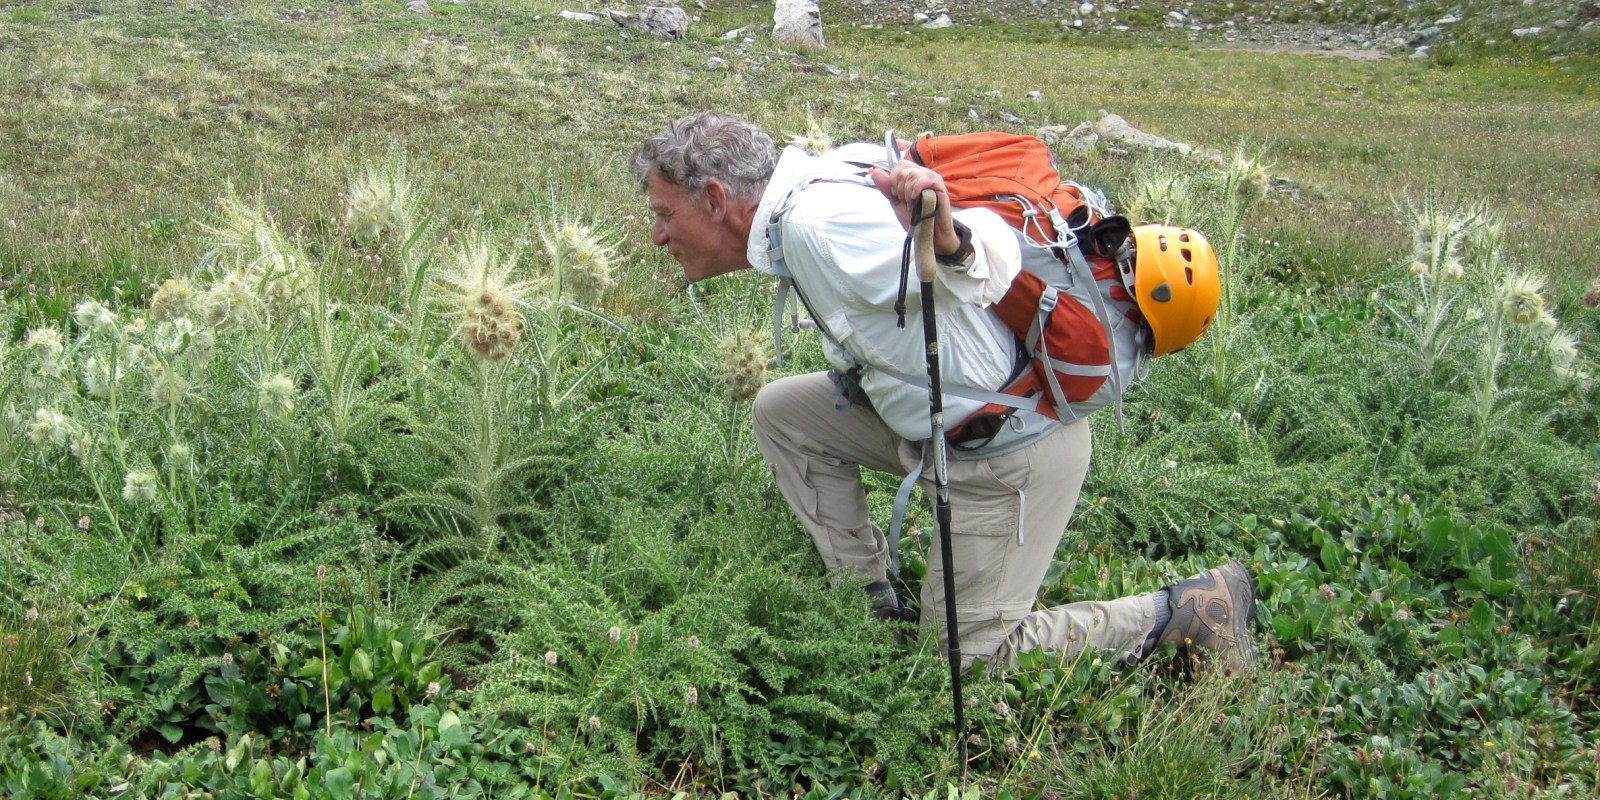 Photograph of Rick Crandall kneeling to smell a large thistle.